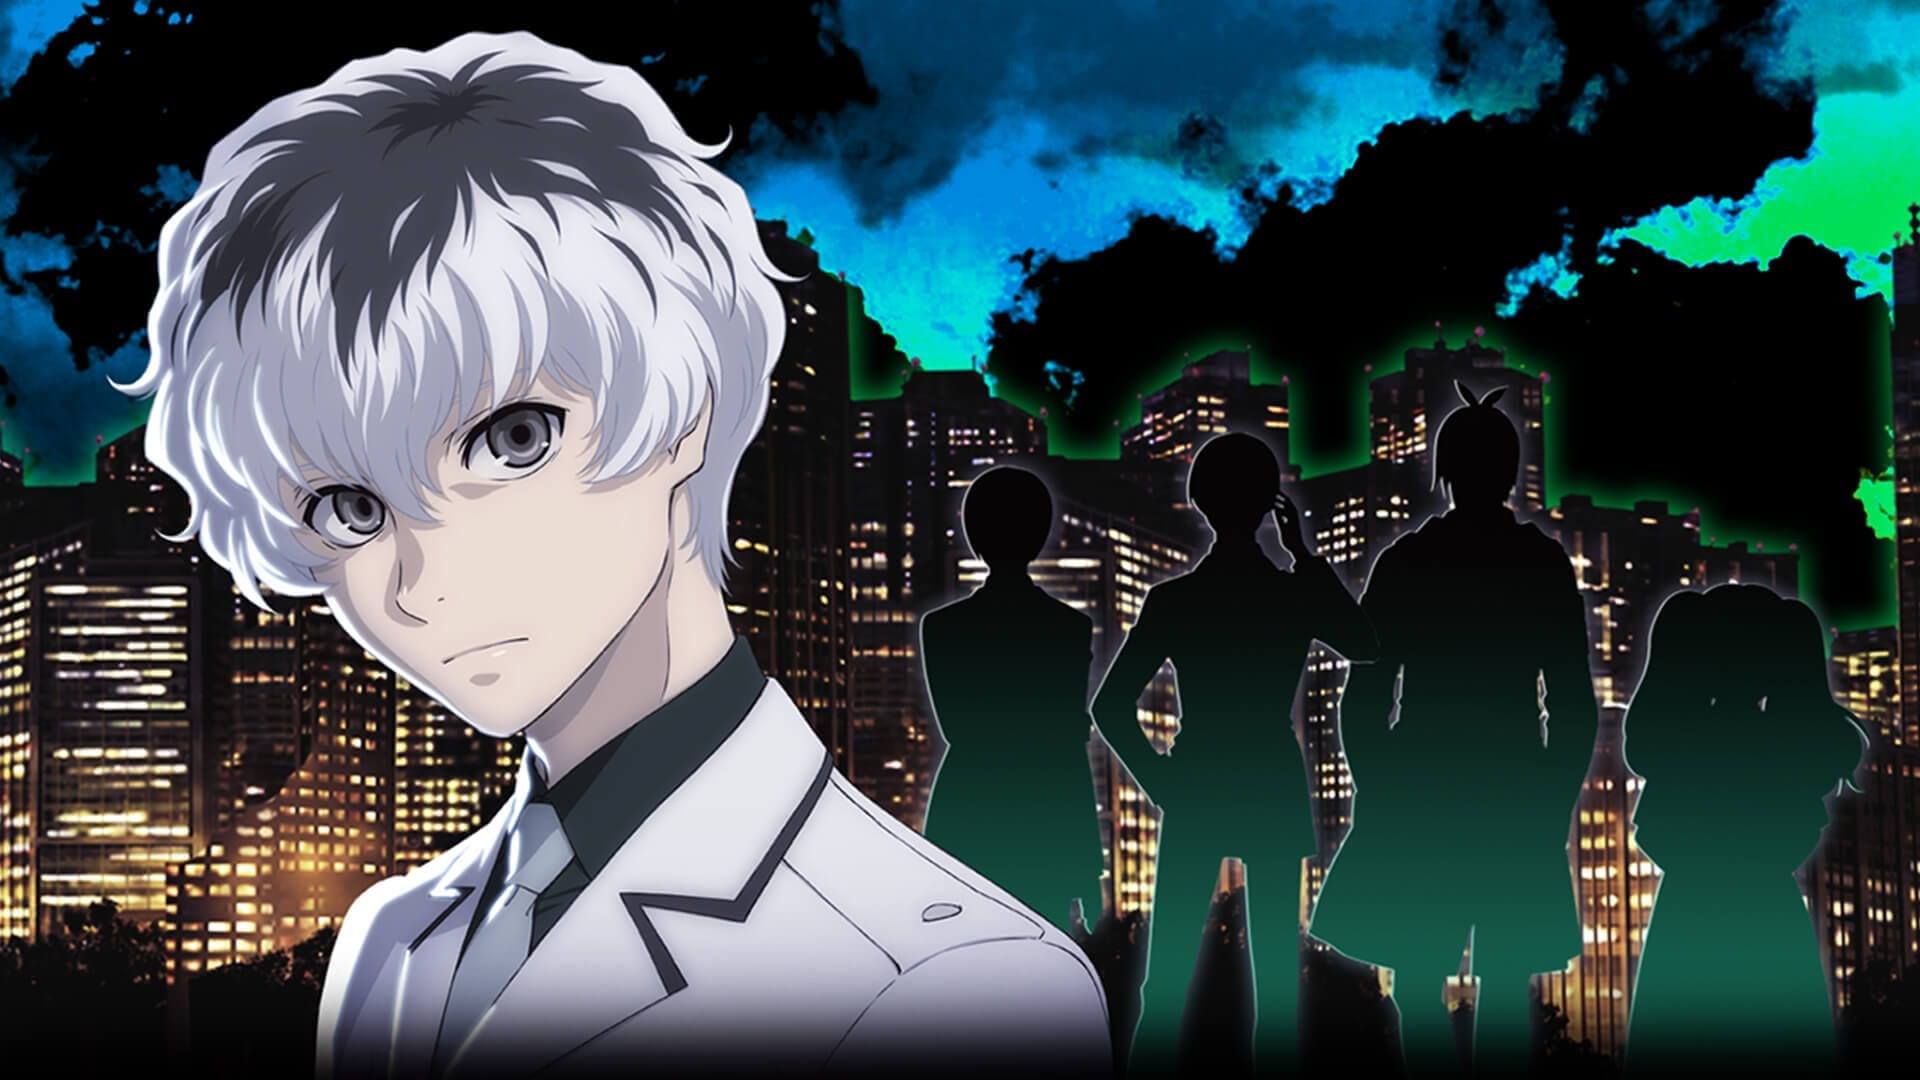 Tokyo Ghoul Re Call To Exist Bandai Namco Entertainment Asia